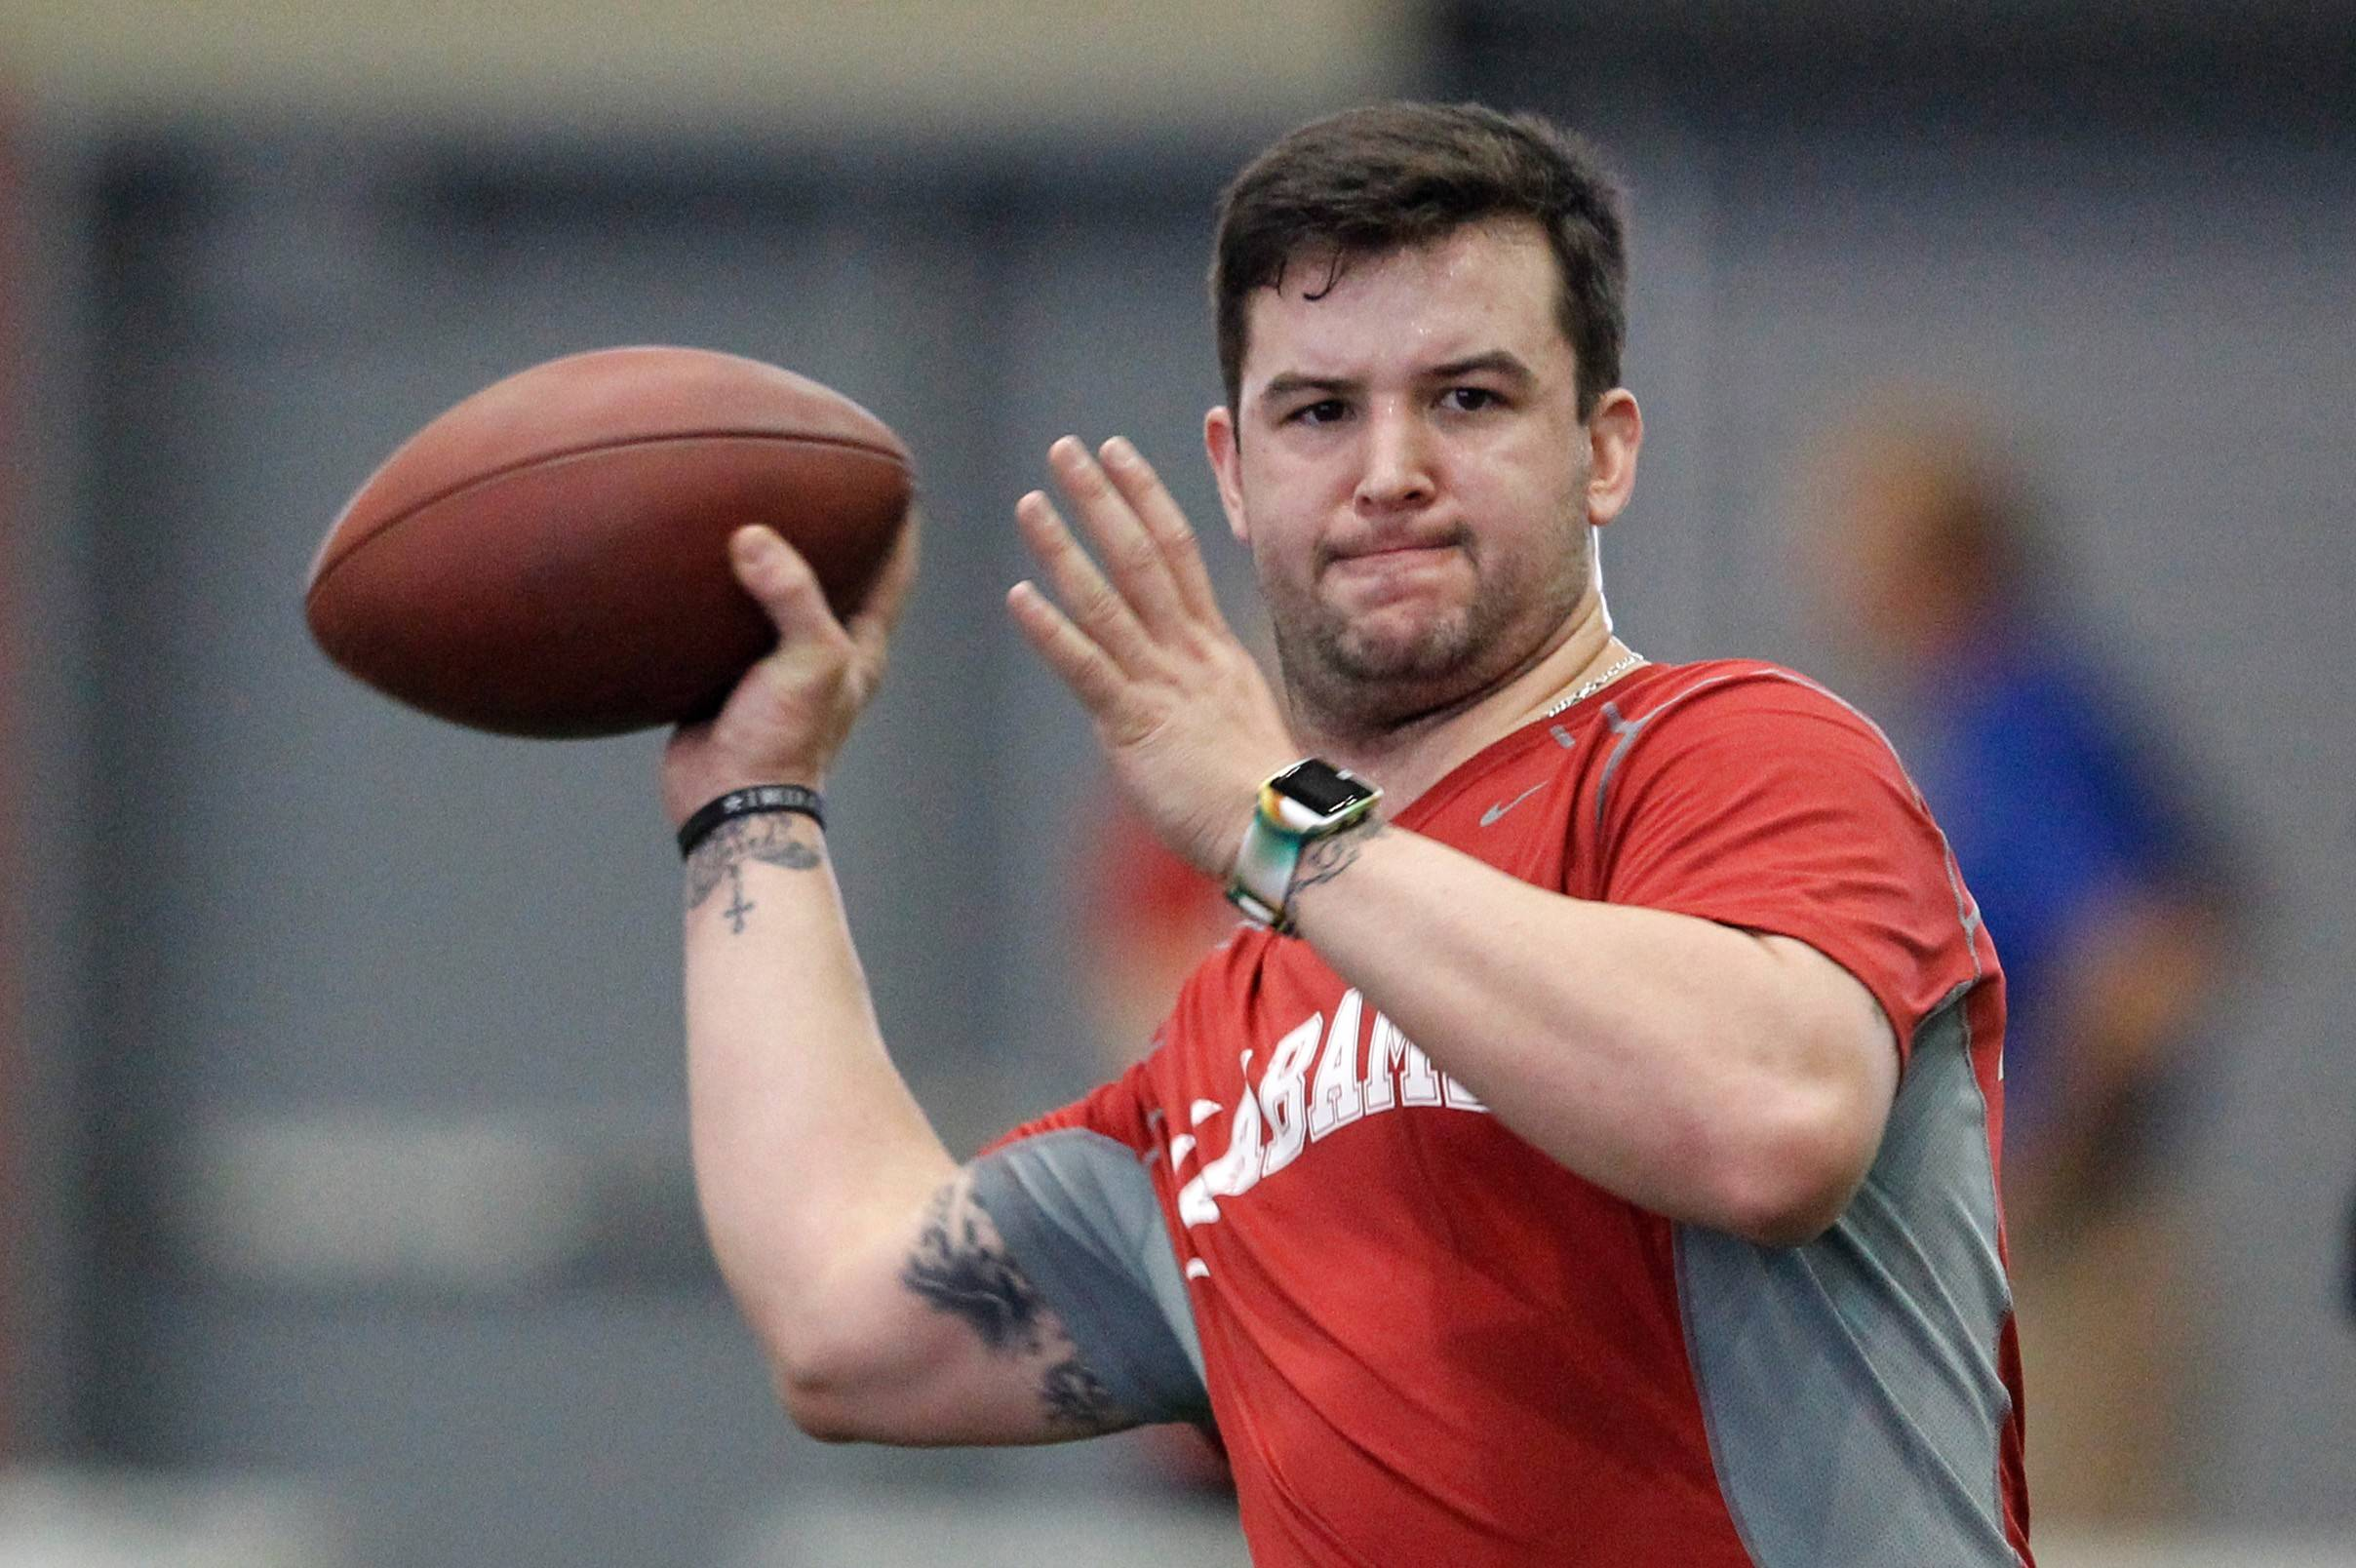 Alabama quarterback A.J. McCarron (6-3¼, 220). Bob LeGere's quick take: Not a physical specimen, but a tough guy who wins (36-4 with 2 national titles) and knows how to lead.